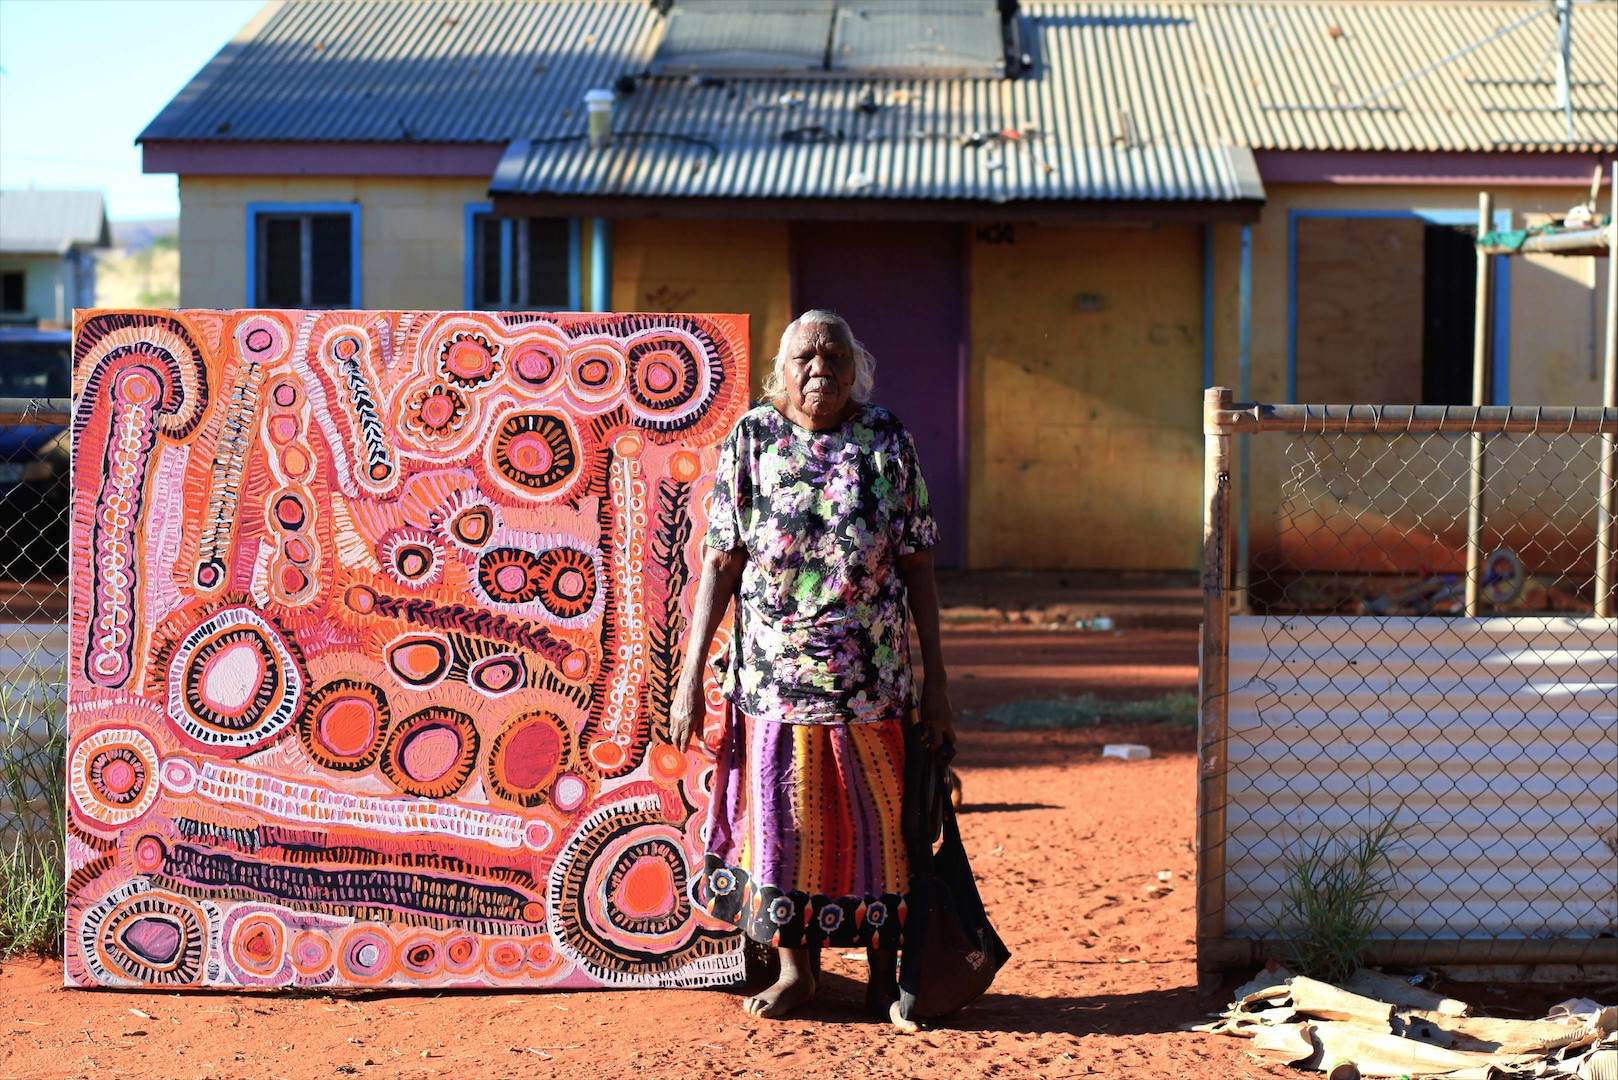 Hanoi exhibition brings Australian indigenous culture to local residents